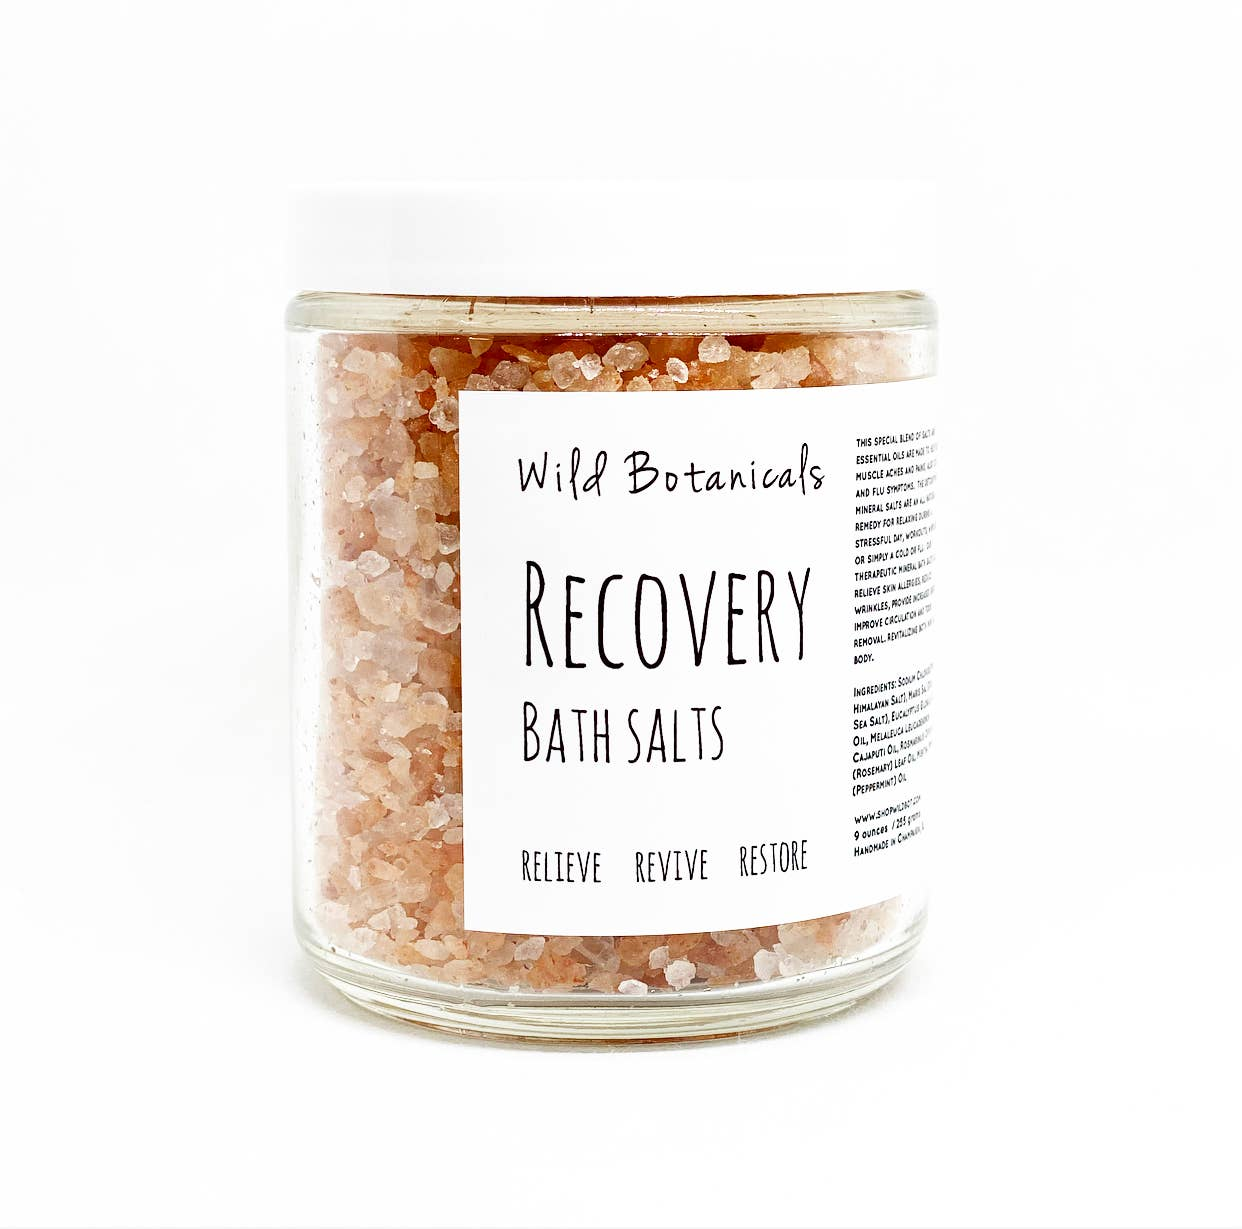 9oz Bath Salts